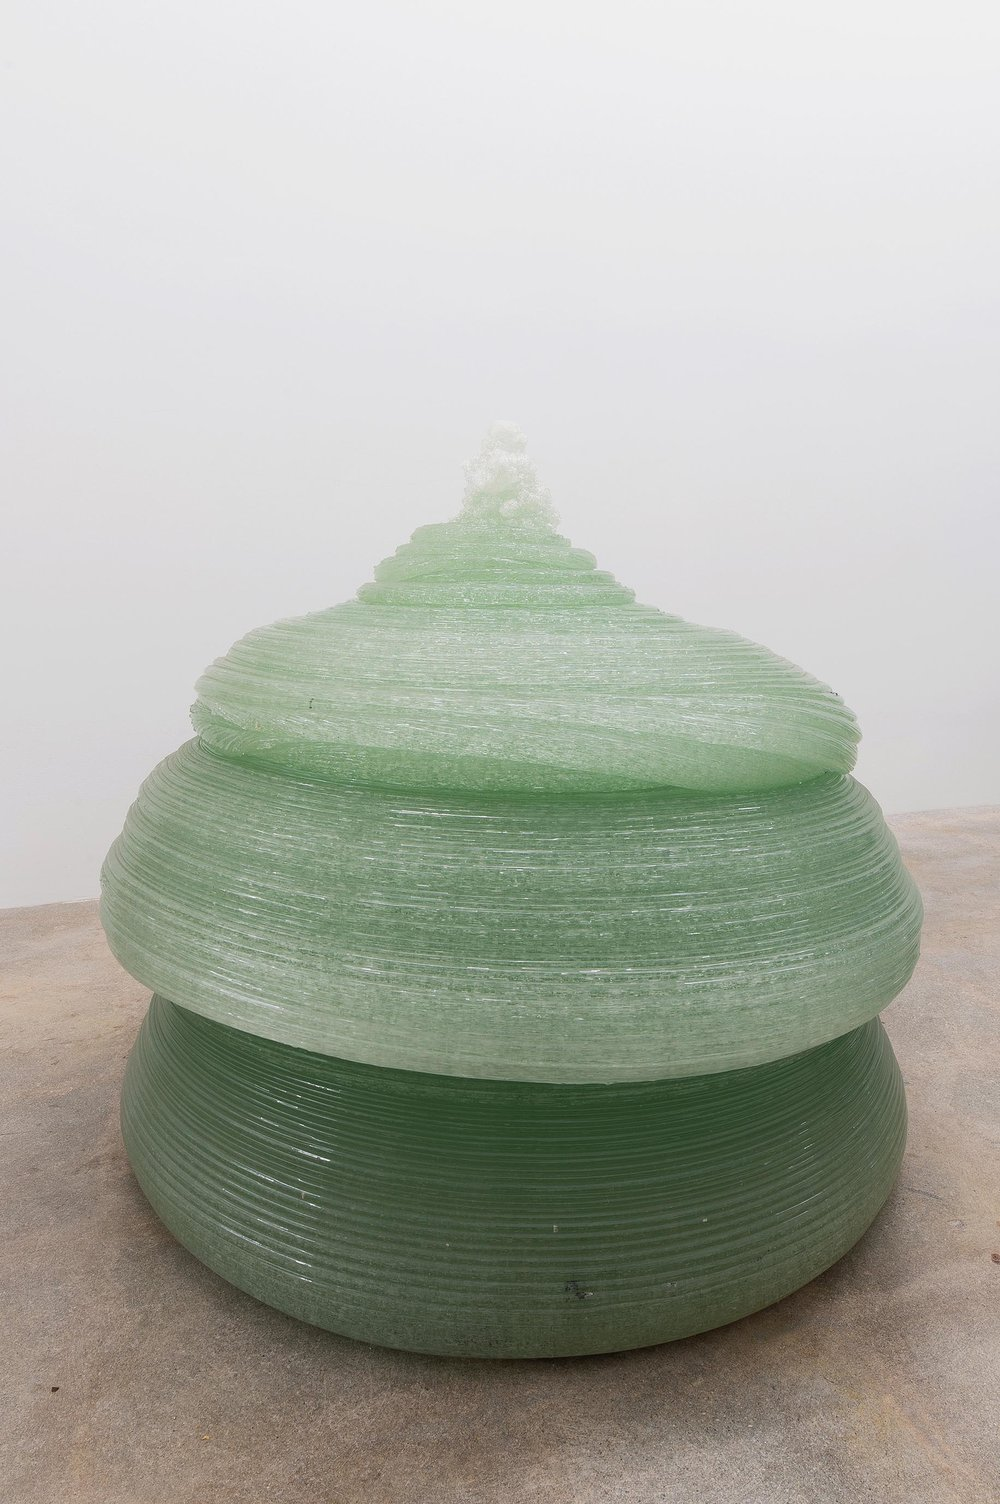 Glass No. 4-I, 1999